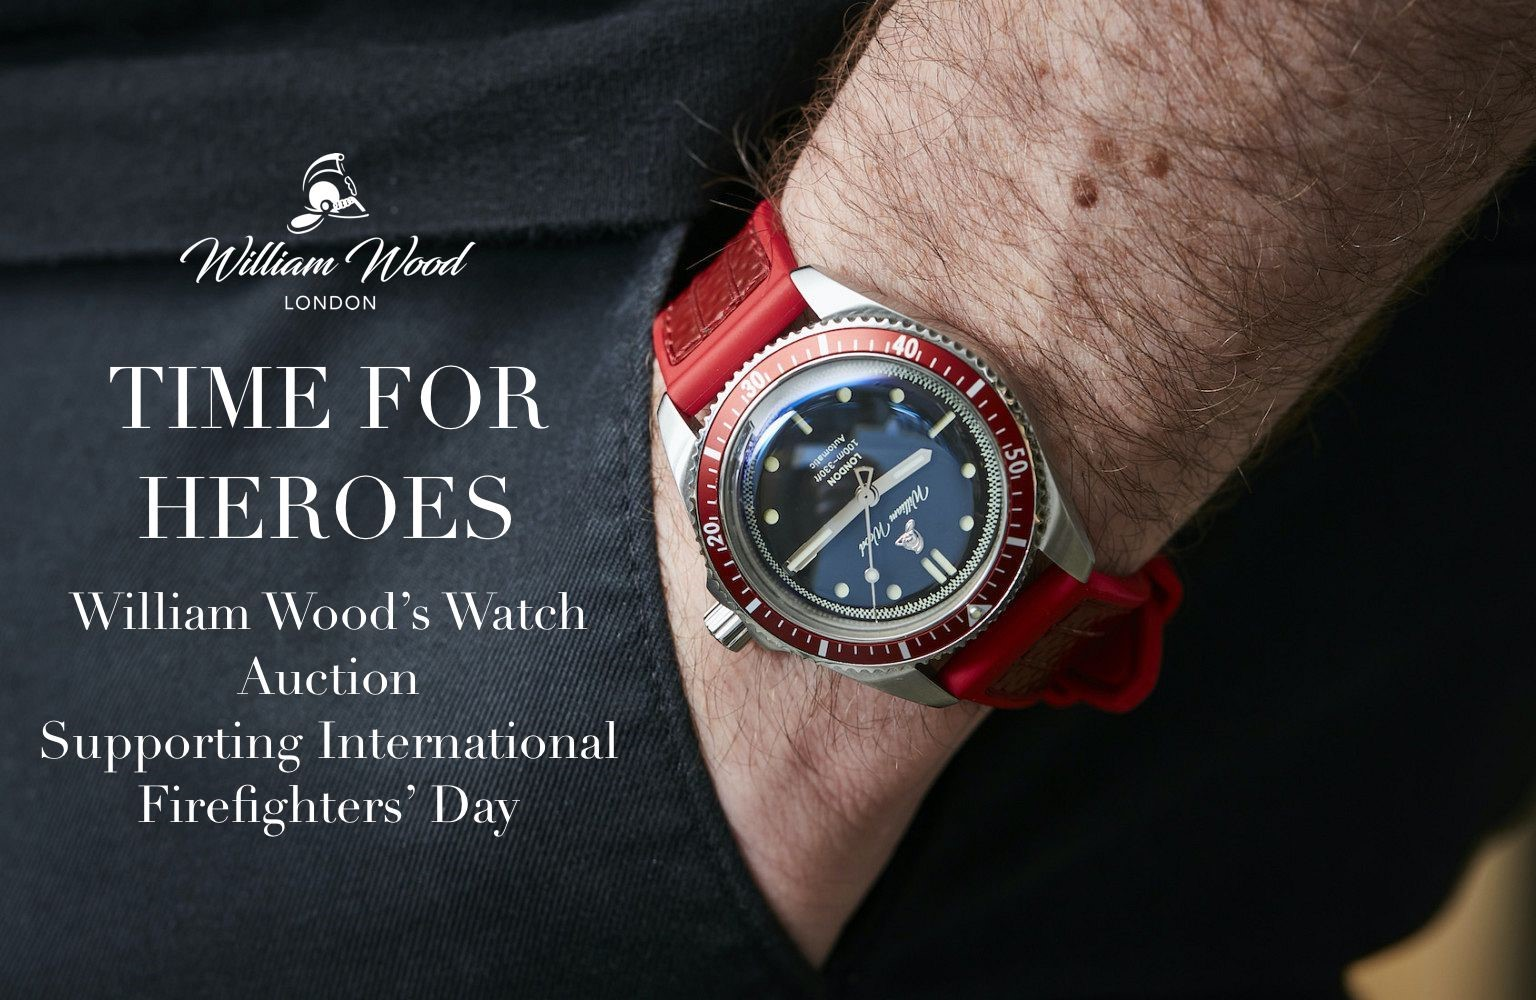 William Wood watches auction